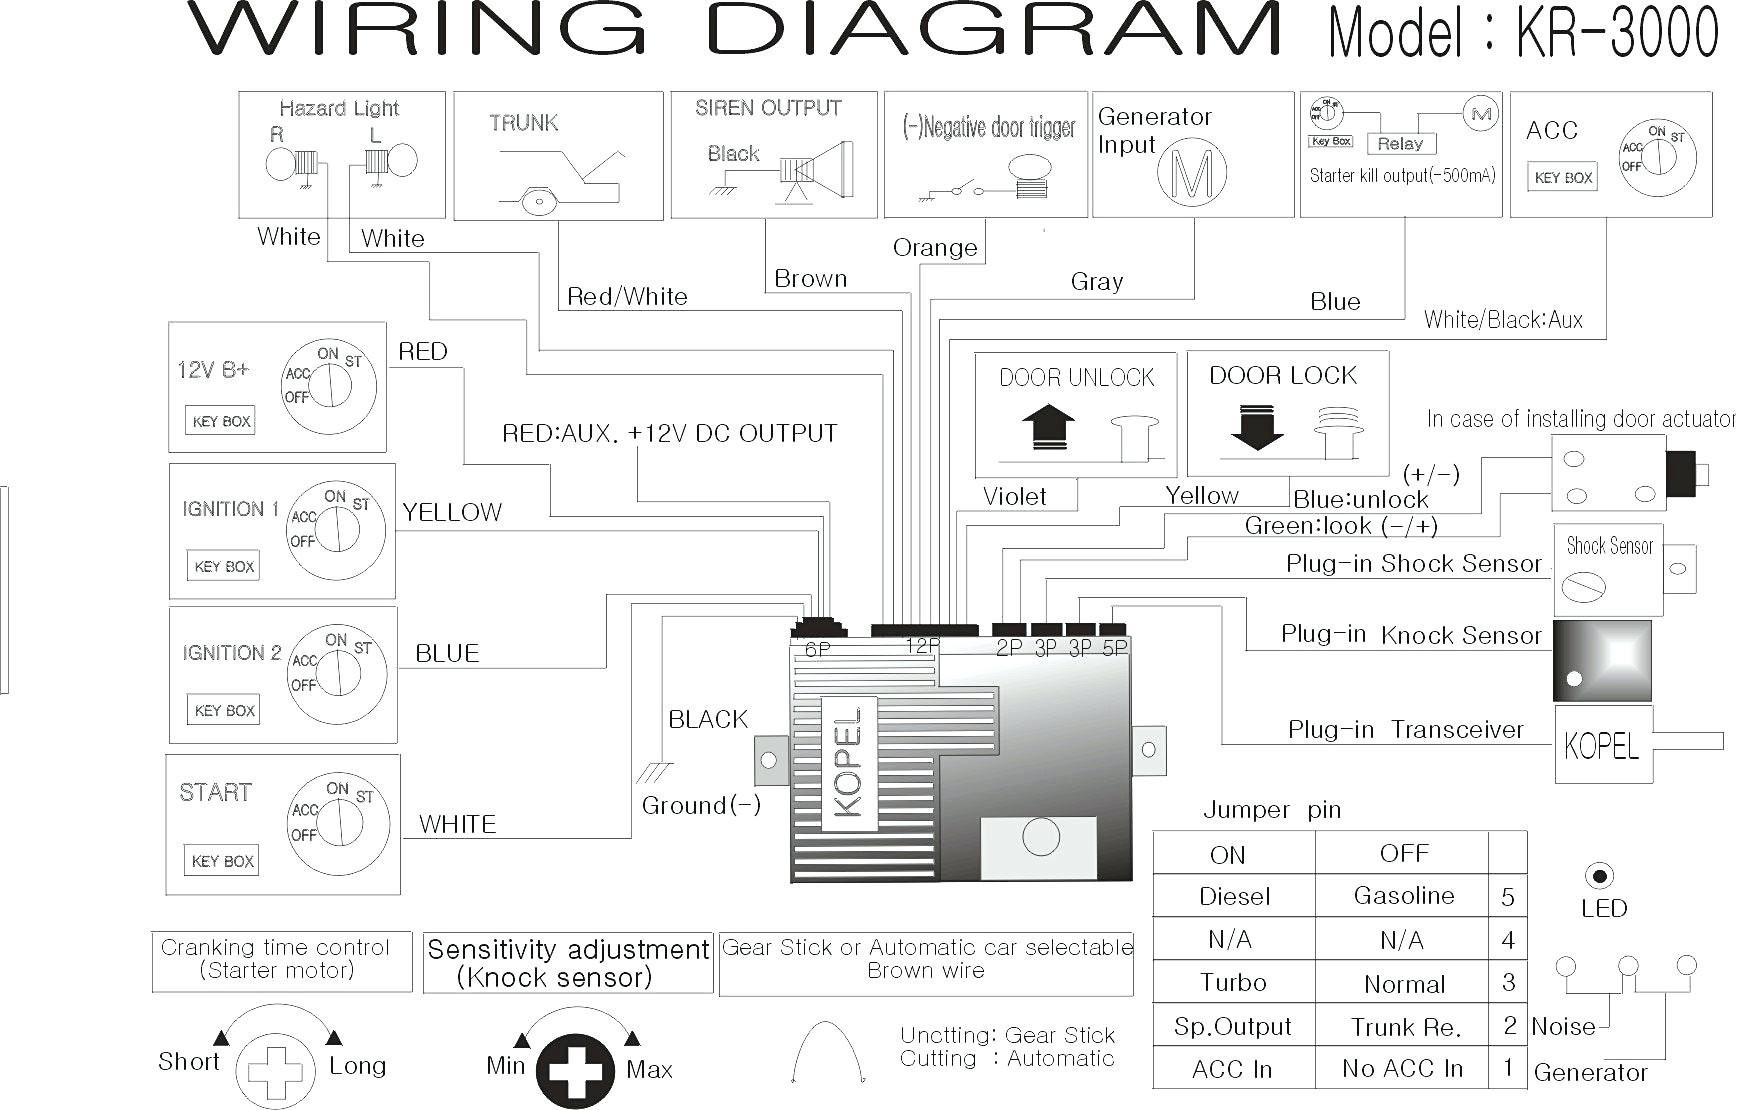 pioneer avh-280bt wiring diagram | free wiring diagram pioneer car audio wiring diagram basic pioneer car audio wiring color codes